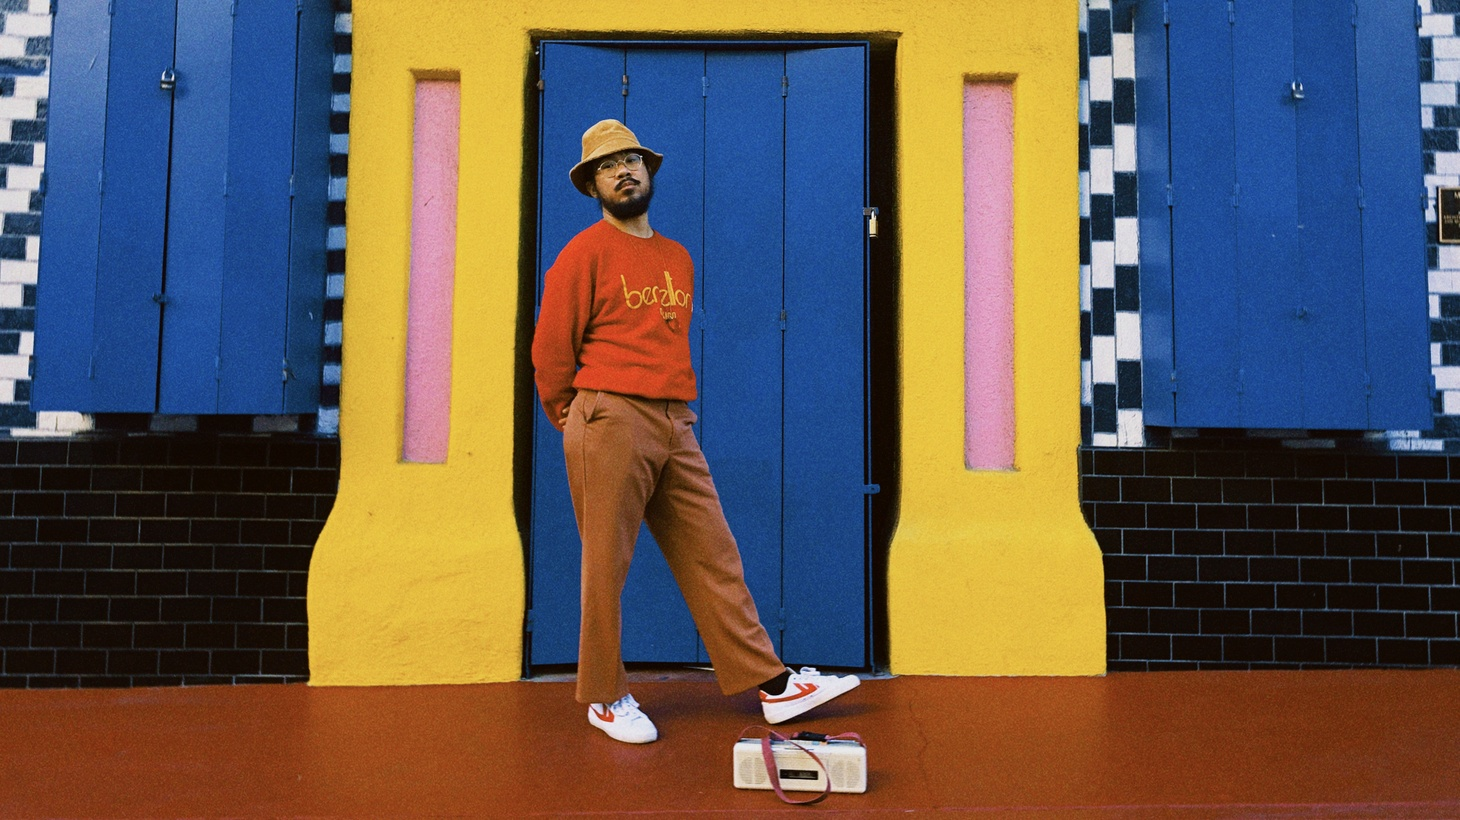 """This year, LA record label Stones Throw celebrates 25 years of uplifting homegrown artists like Anderson .Paak, Mayer Hawthorne, and Dam-Funk, but today we'll spotlight the evolution of the artist and producer Mndsgn (pronounced """"mind design""""), and…"""